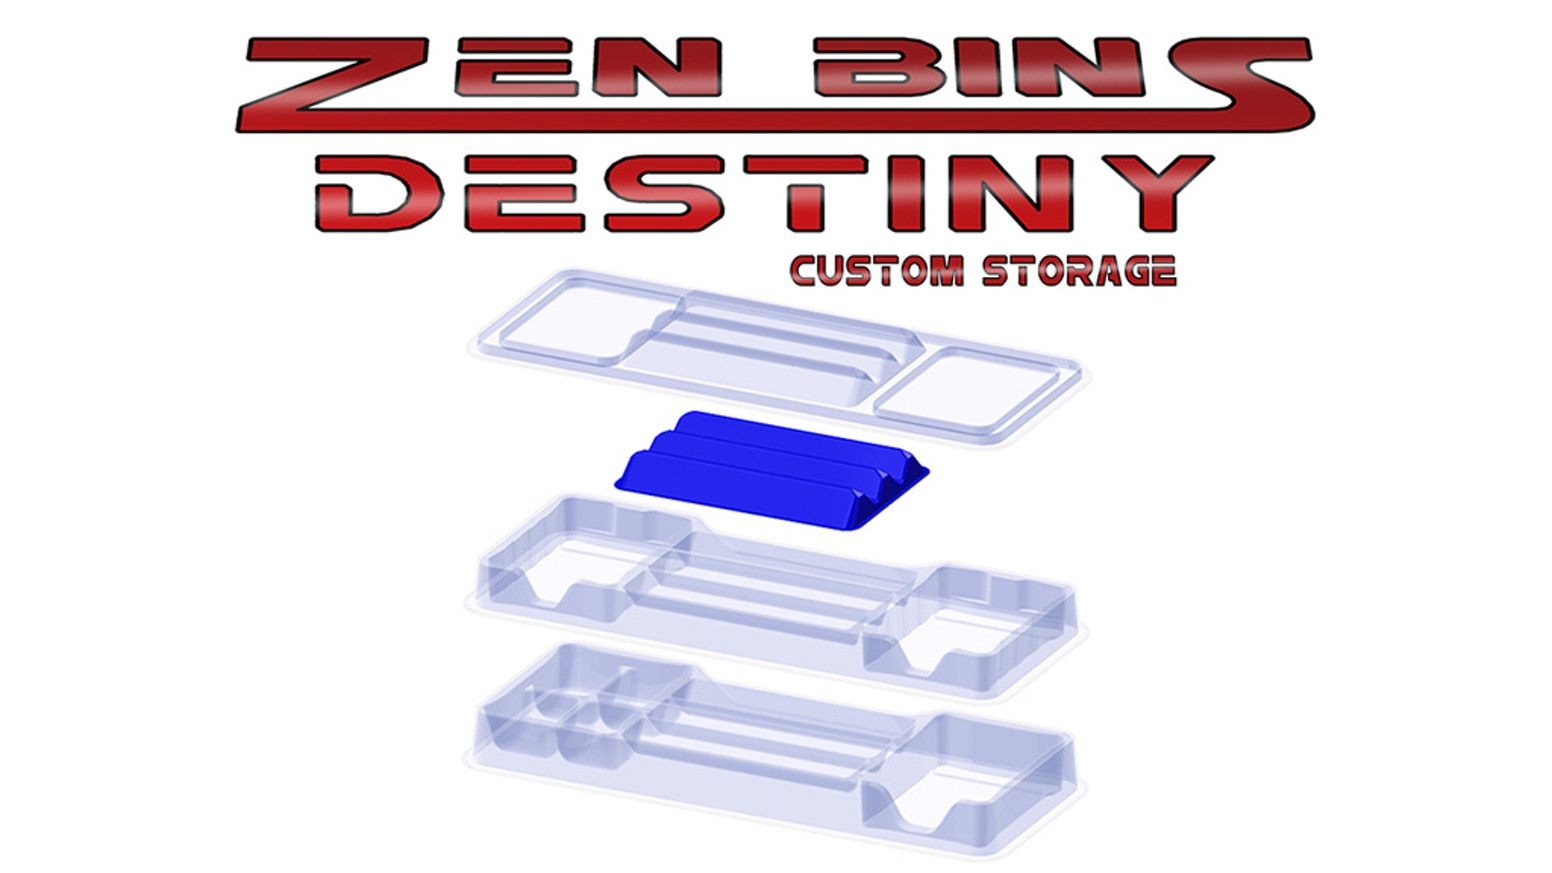 Custom Interlocking Stackable Storage Solution to Master Your Destiny Game Collection. Thermoformed Trays Hold Cards, Dice, and Tokens.